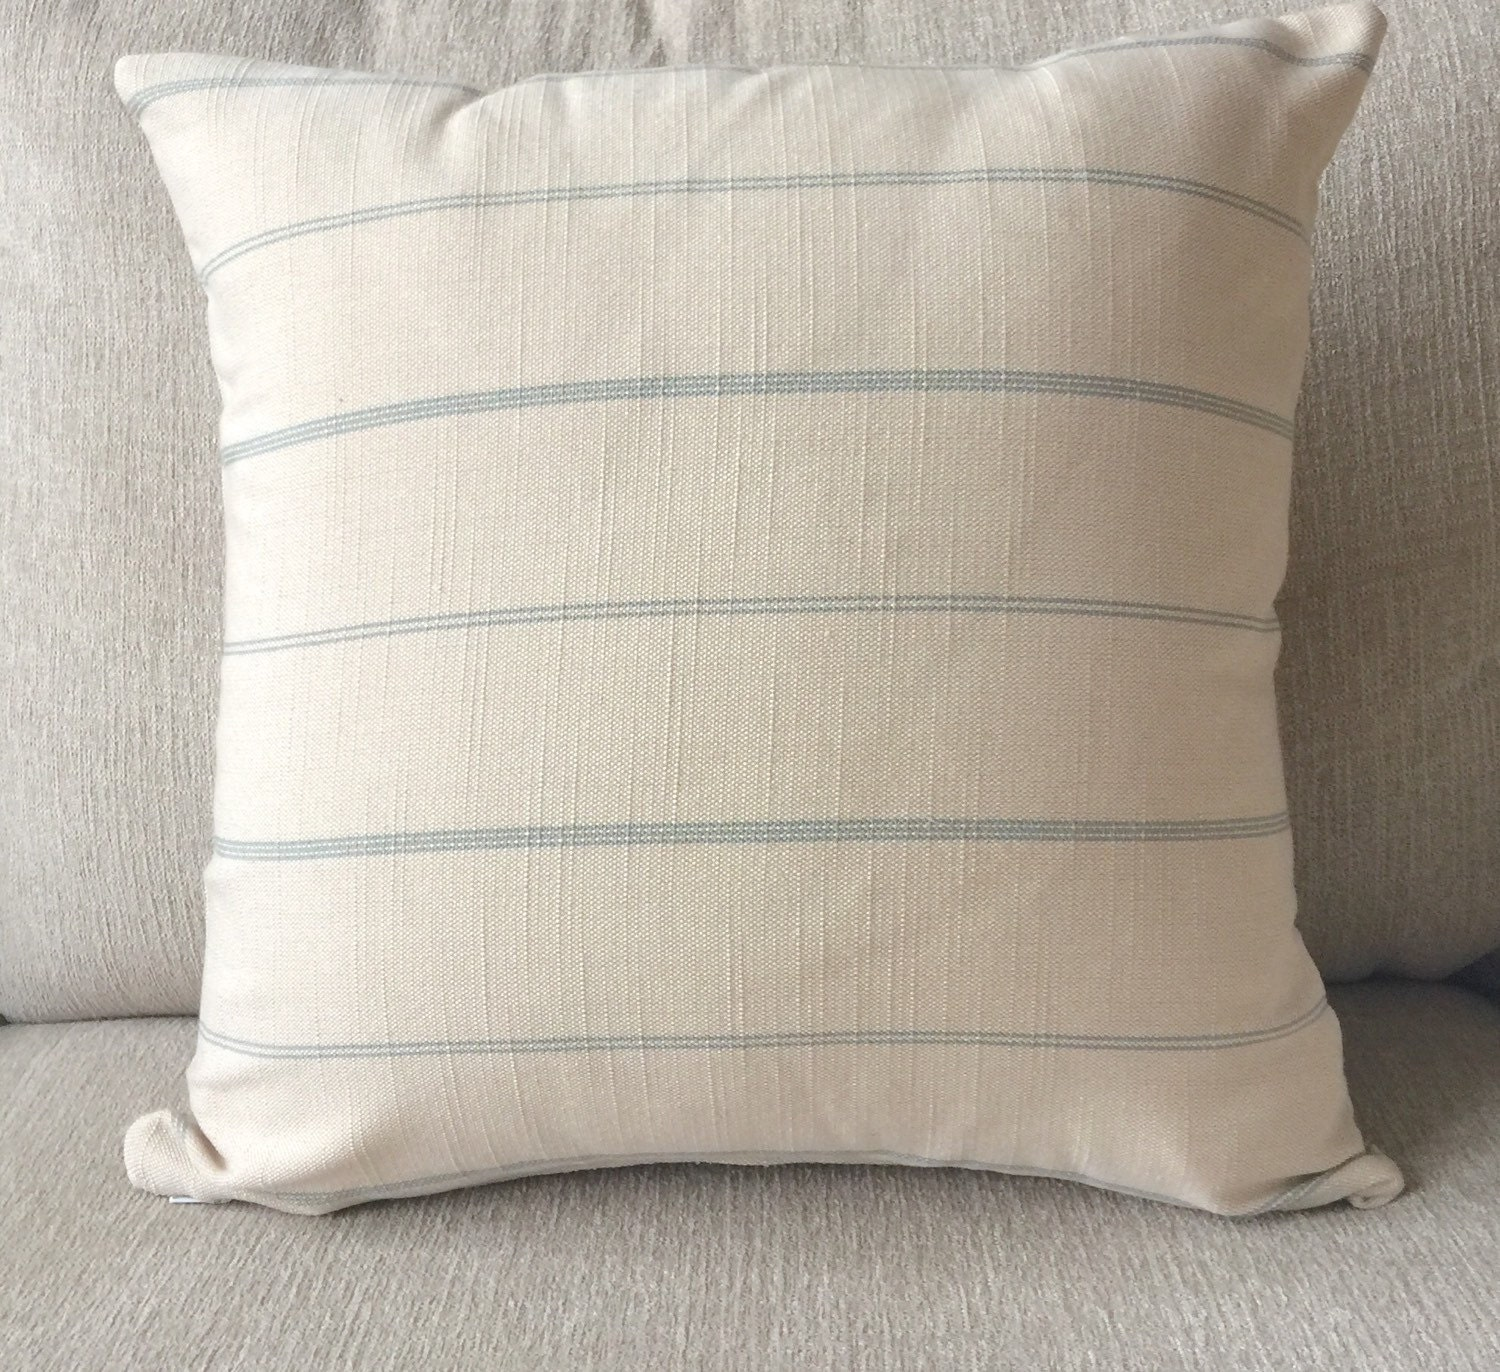 Throw Pillow Covers Farmhouse : Decorative pillow cover french farmhouse light beige with